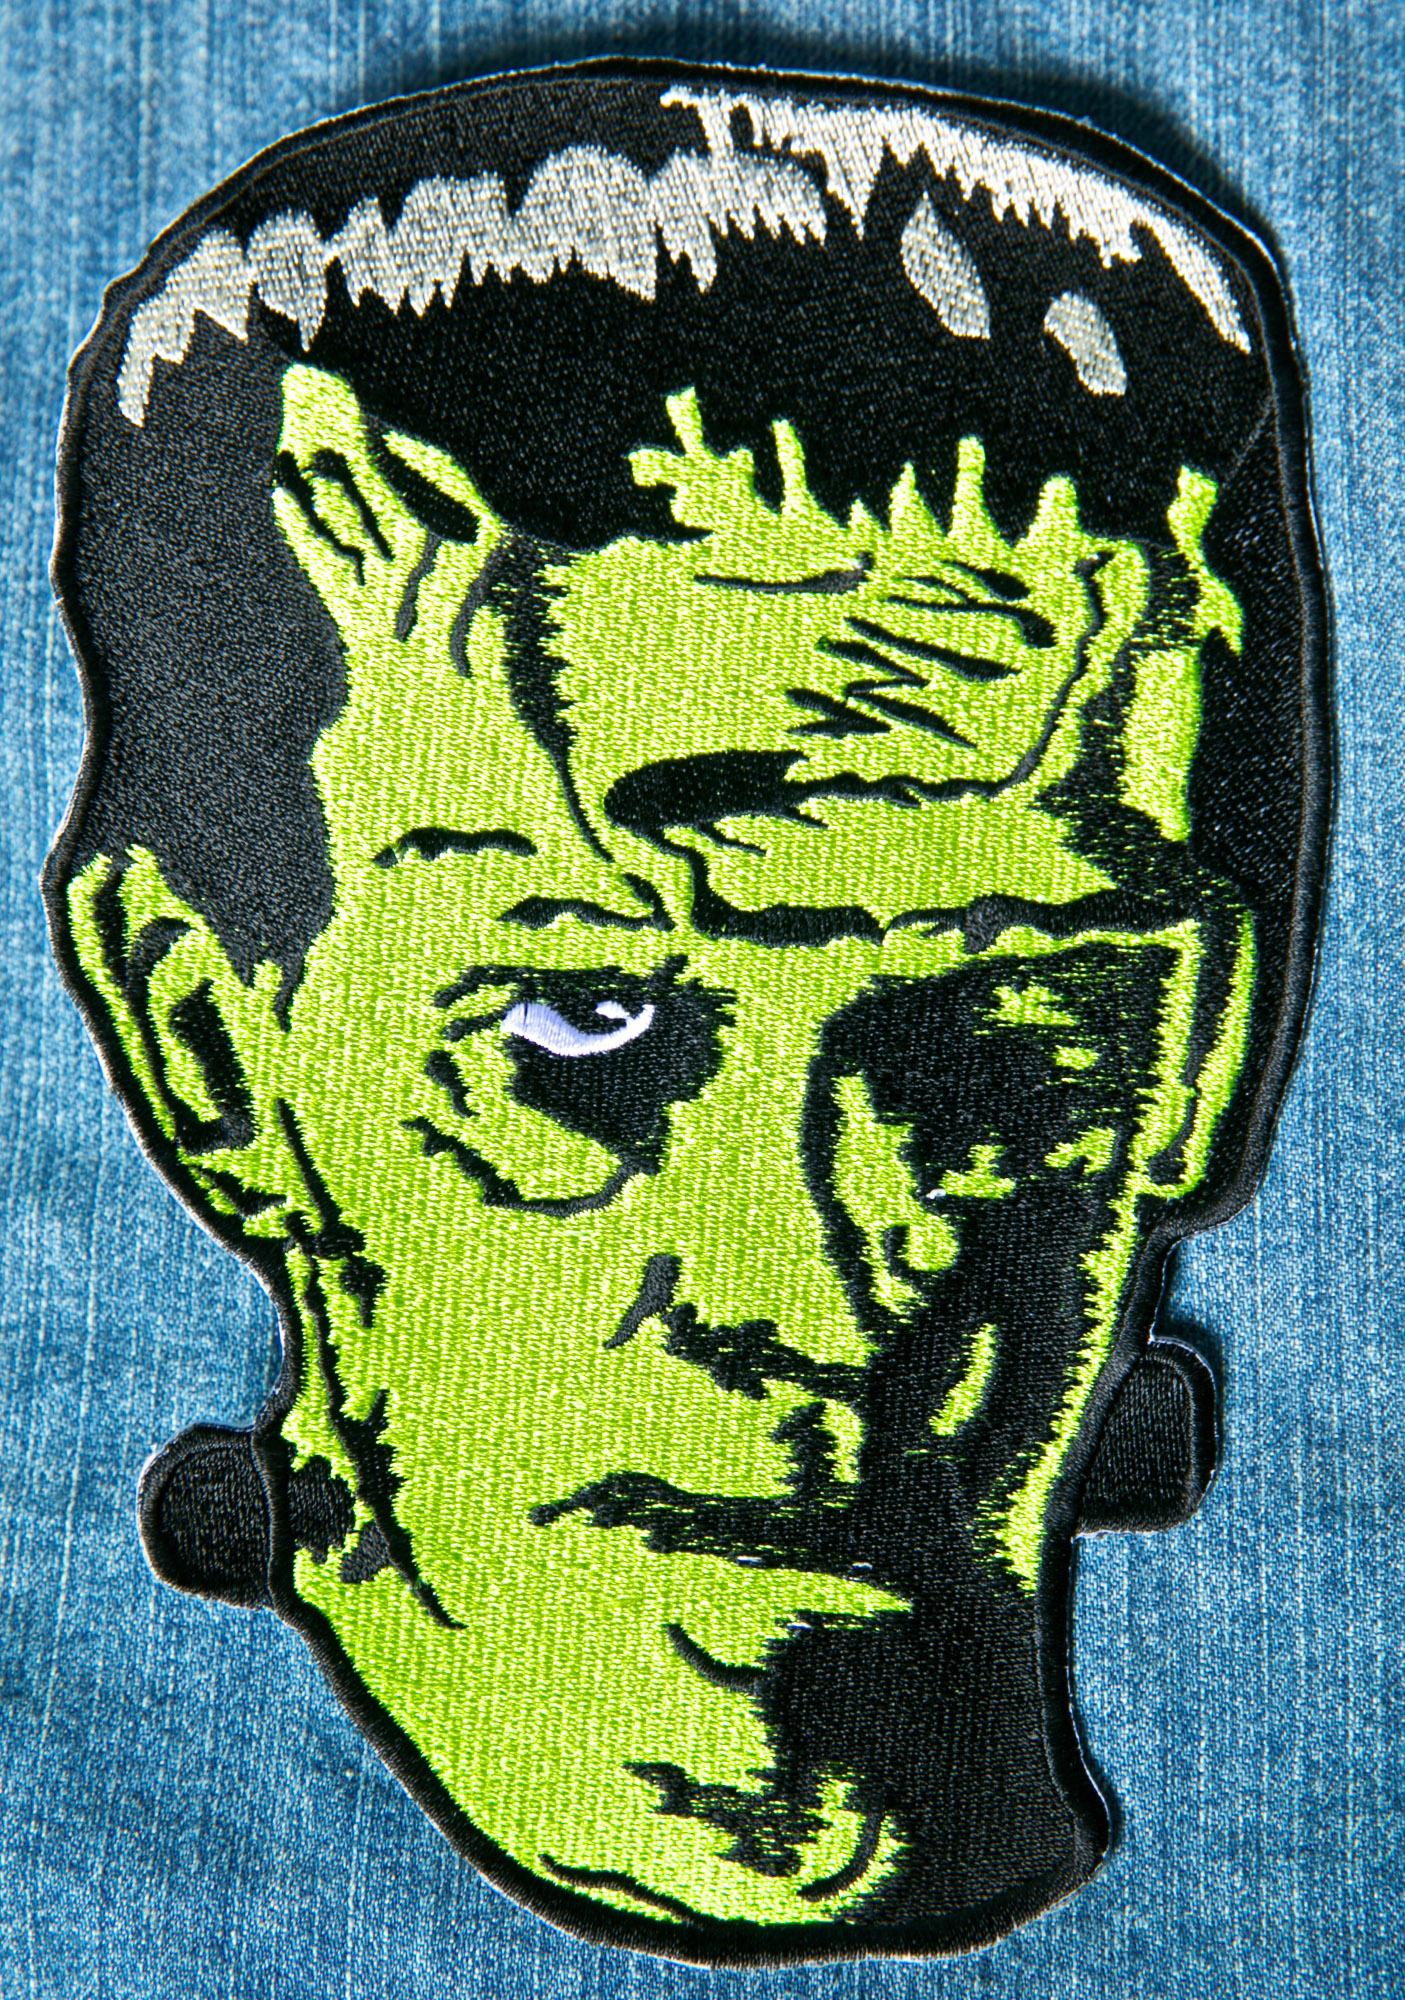 Victor's Severed Head Patch